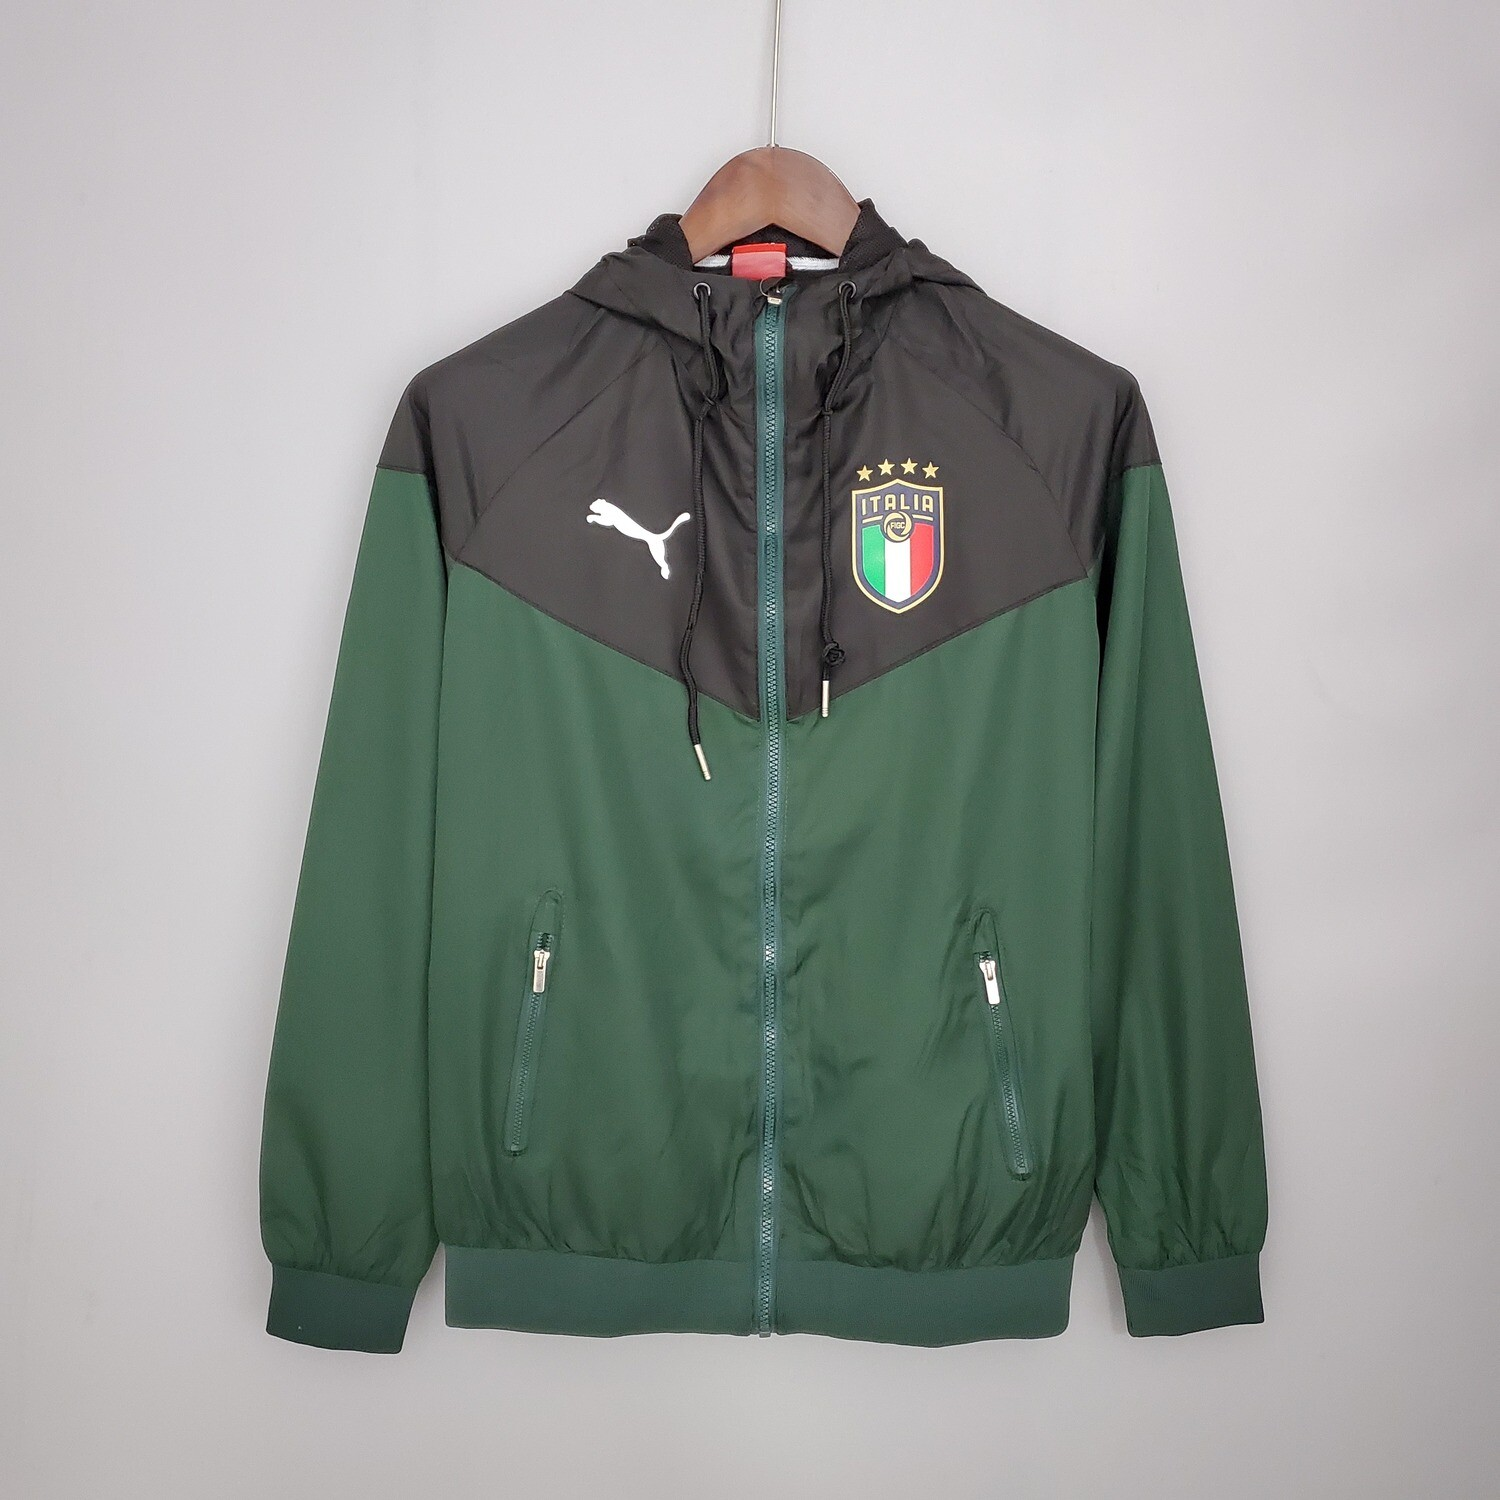 Italy Green and Black Windbreaker 2021-22 [Pre-paid Only]